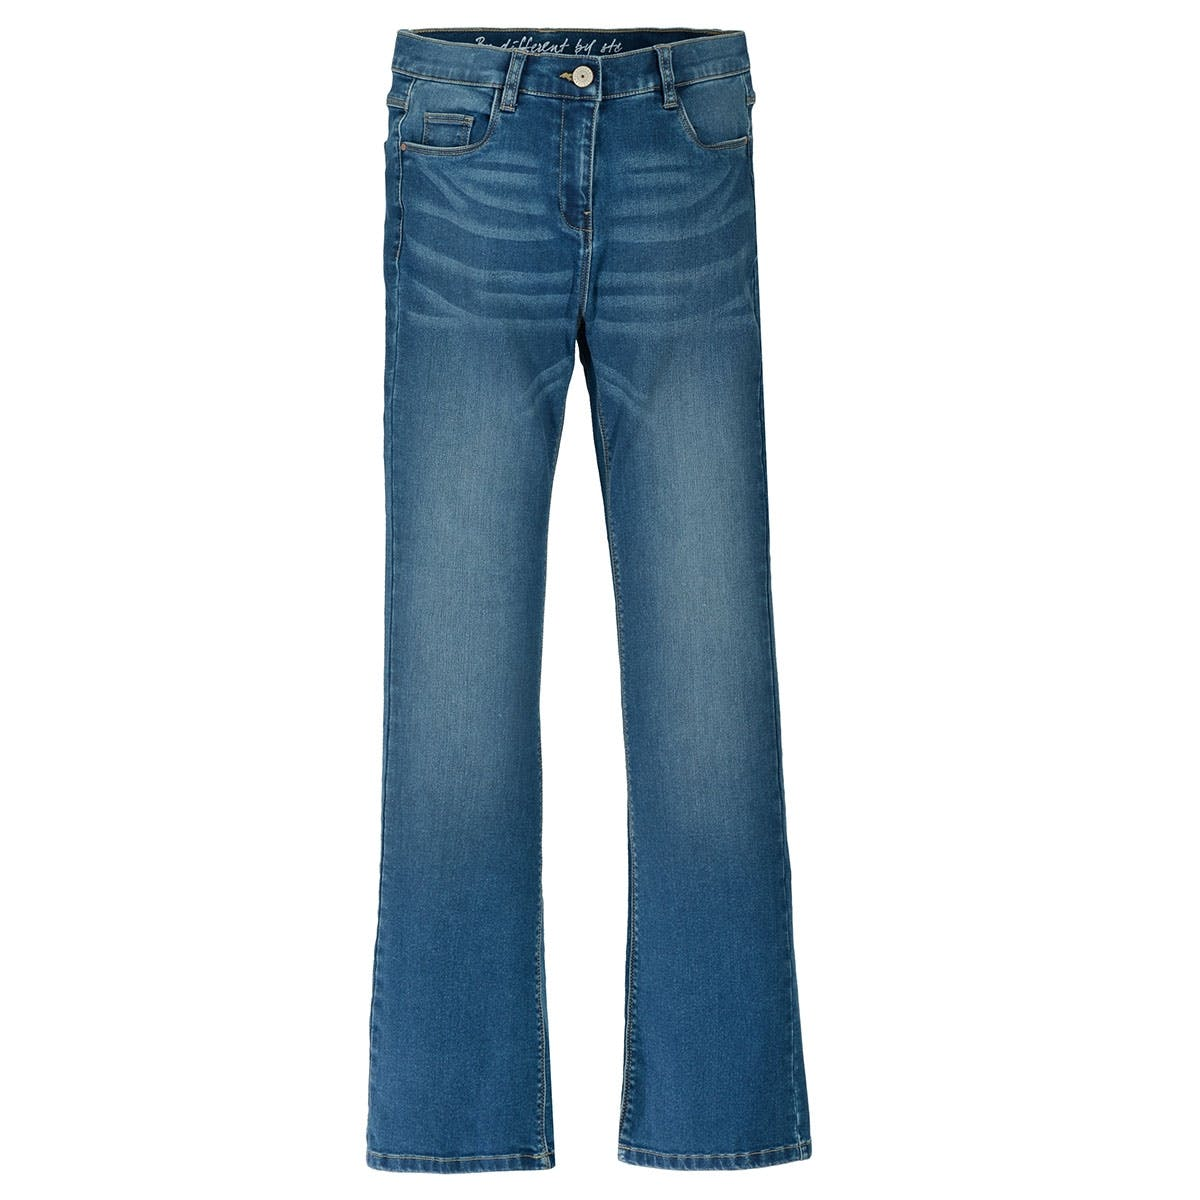 Mädchen Jeans Slim Fit - Mid Blue Denim